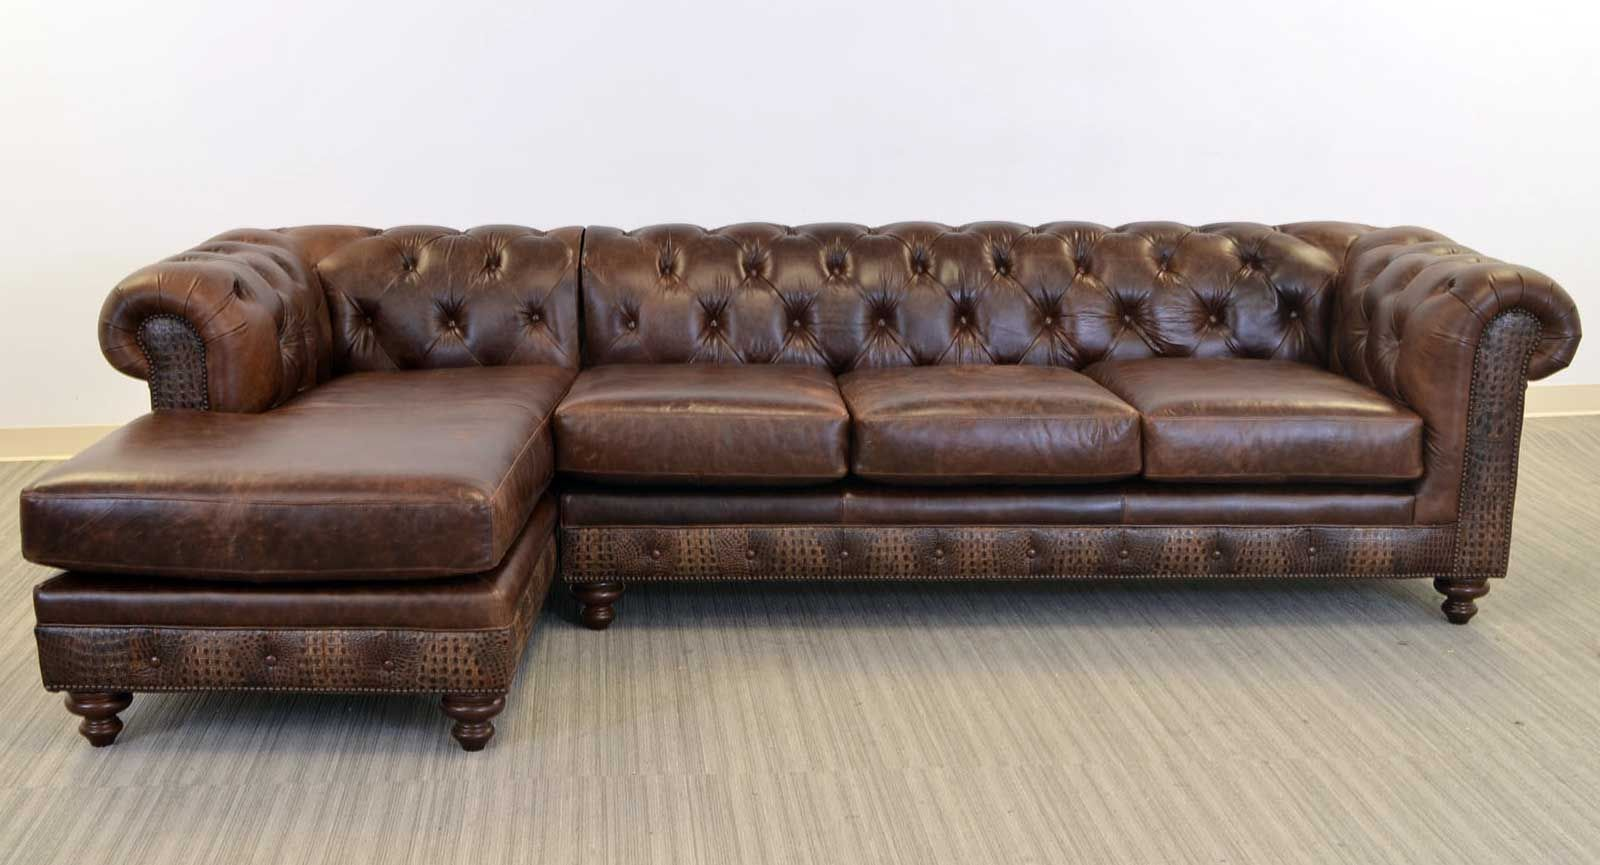 Kensington Sofa Chaise The Leather Sofa Company The Scalloped And